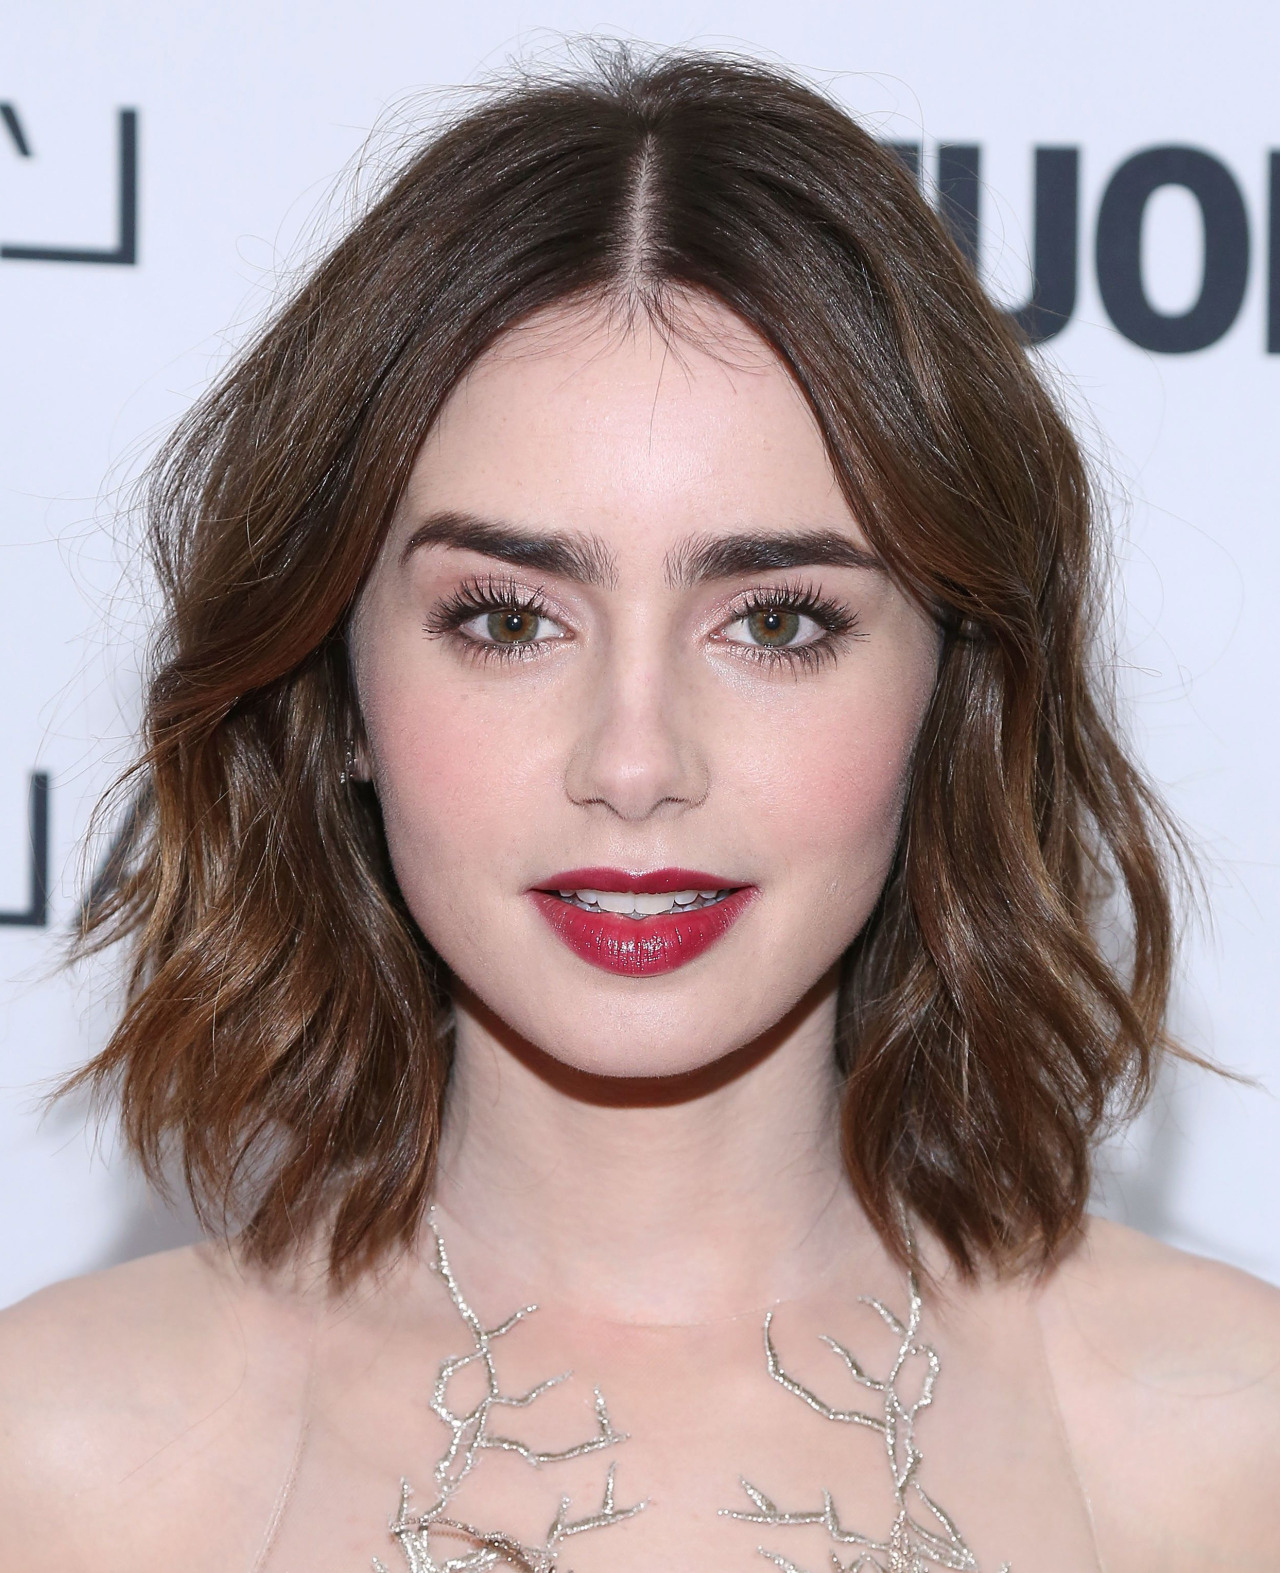 15 Of The Best Hairstyles For Medium Length Wavy Hair – The Skincare Within Most Recently Released Medium Hairstyles Loose Curls (Gallery 5 of 20)